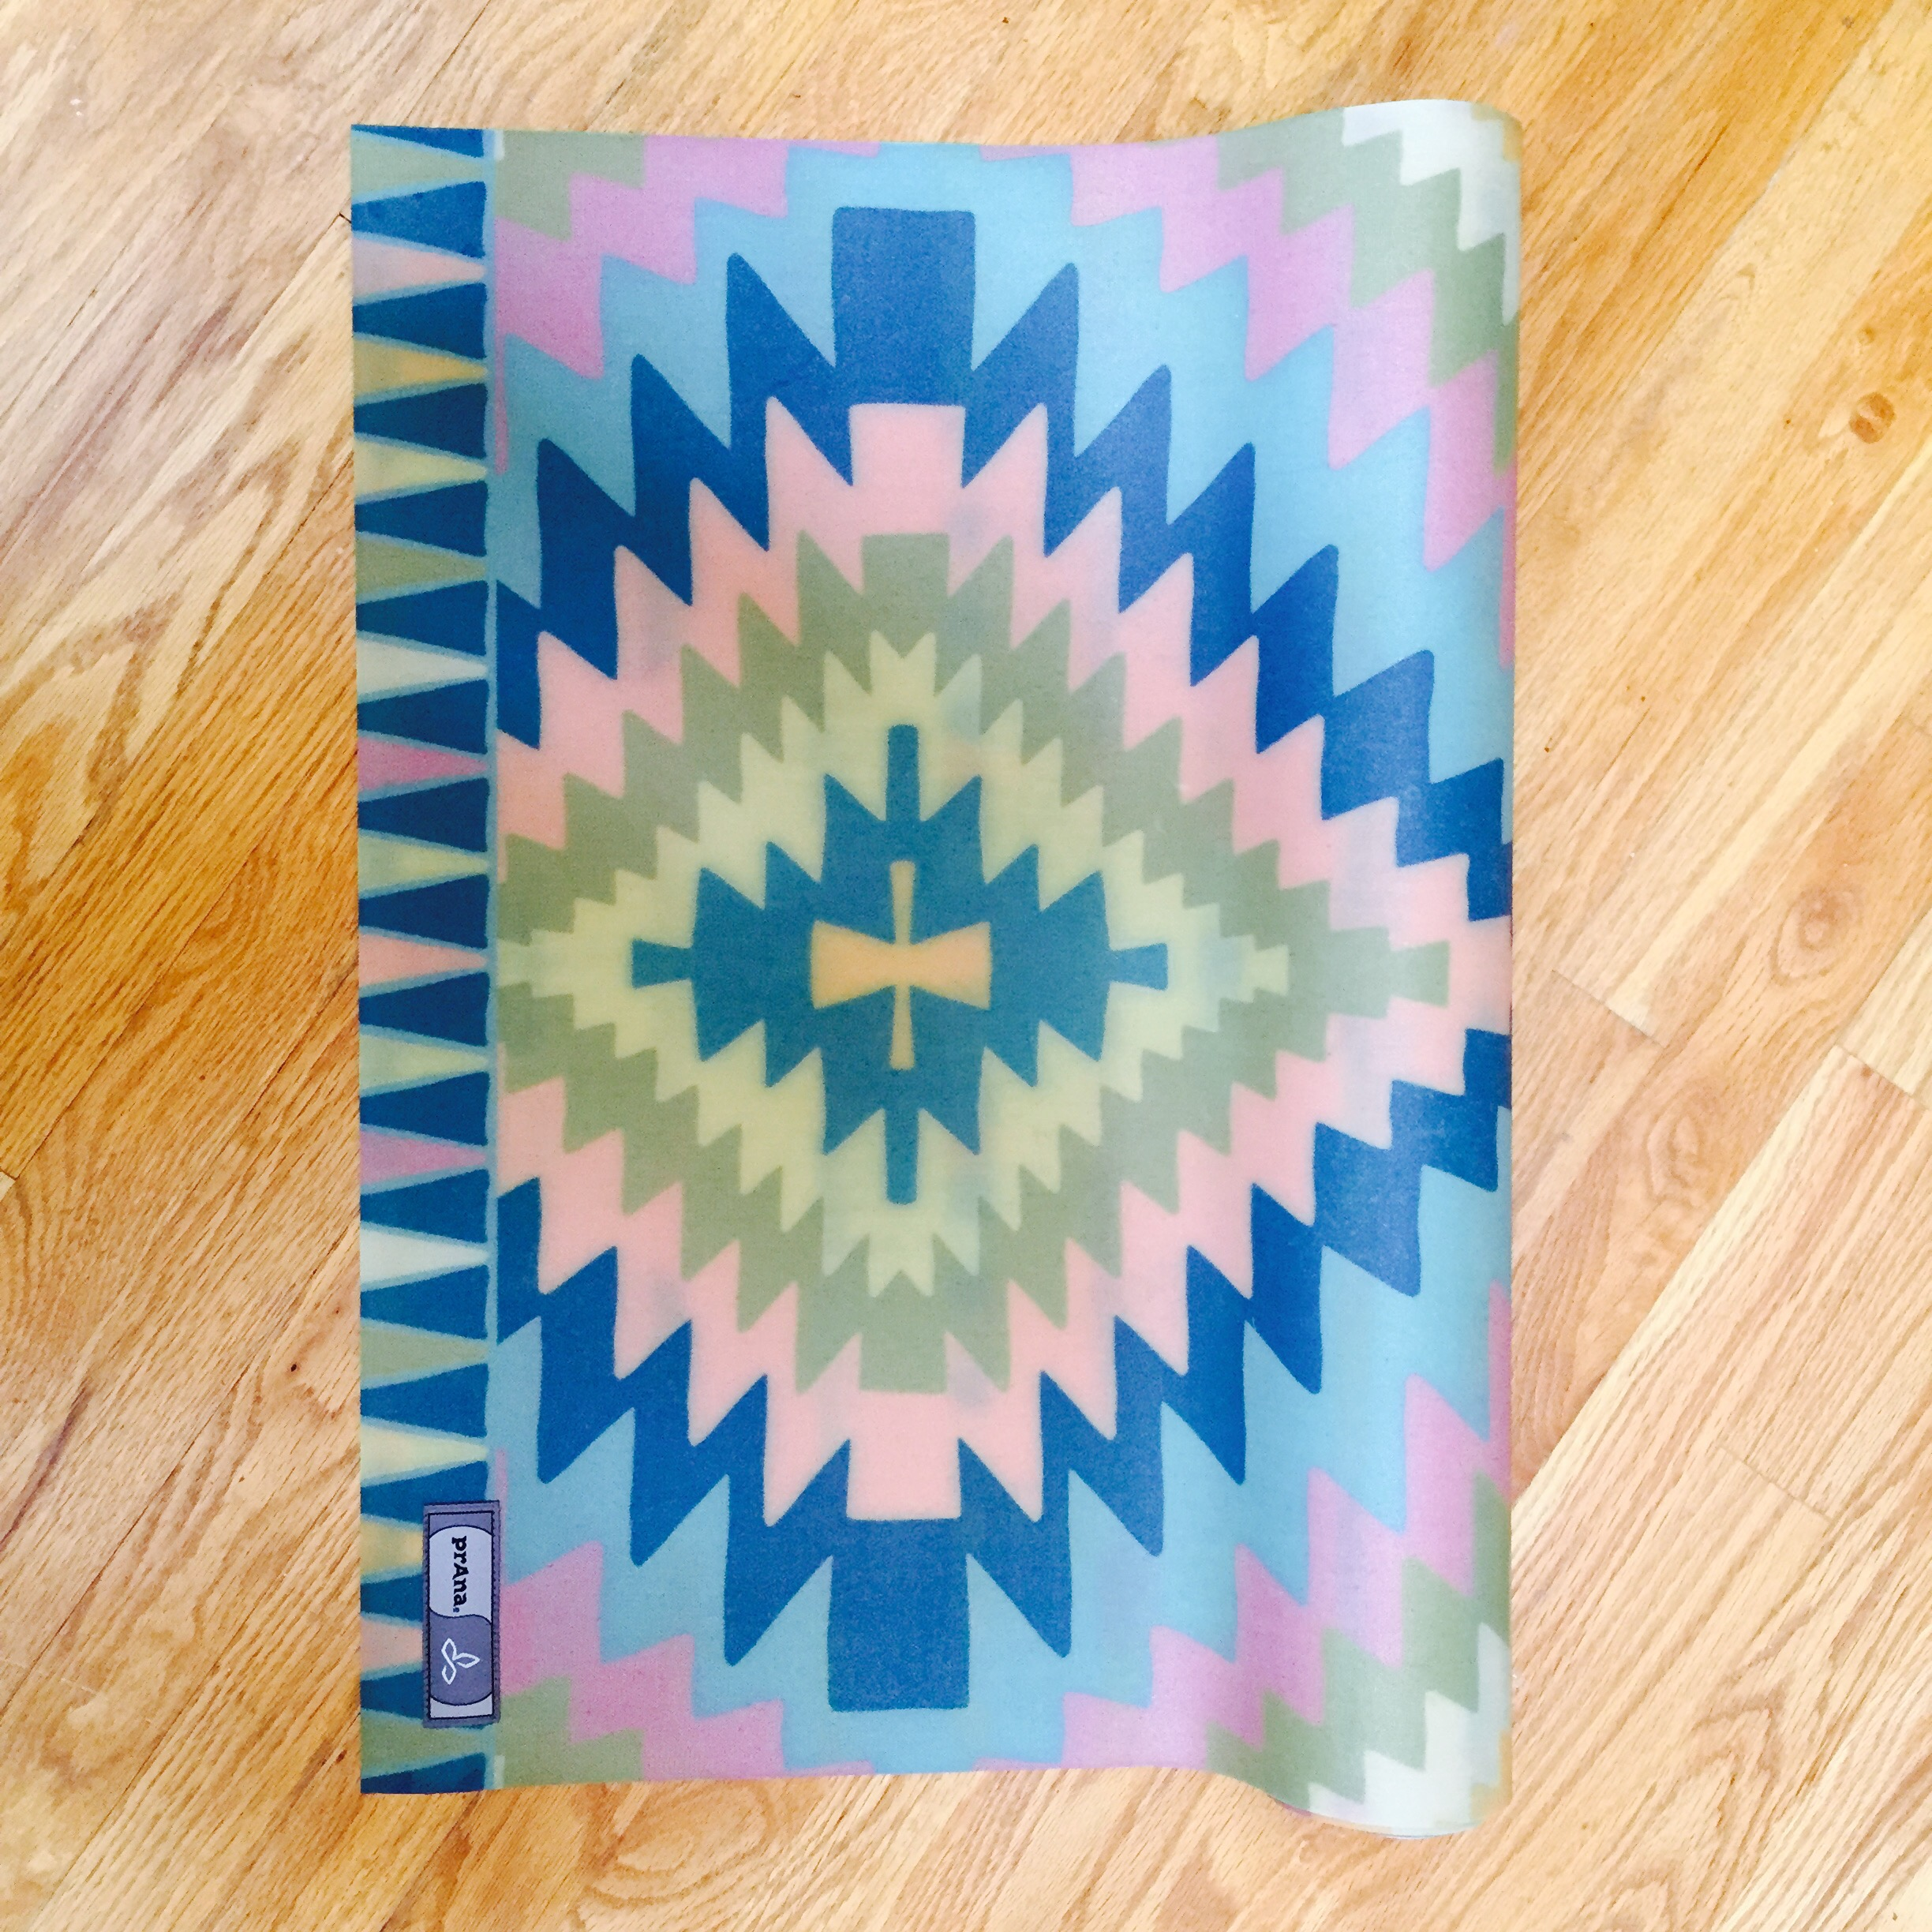 printed magazine philly gorgeous mats well see be you philadelphia yoga have to mat